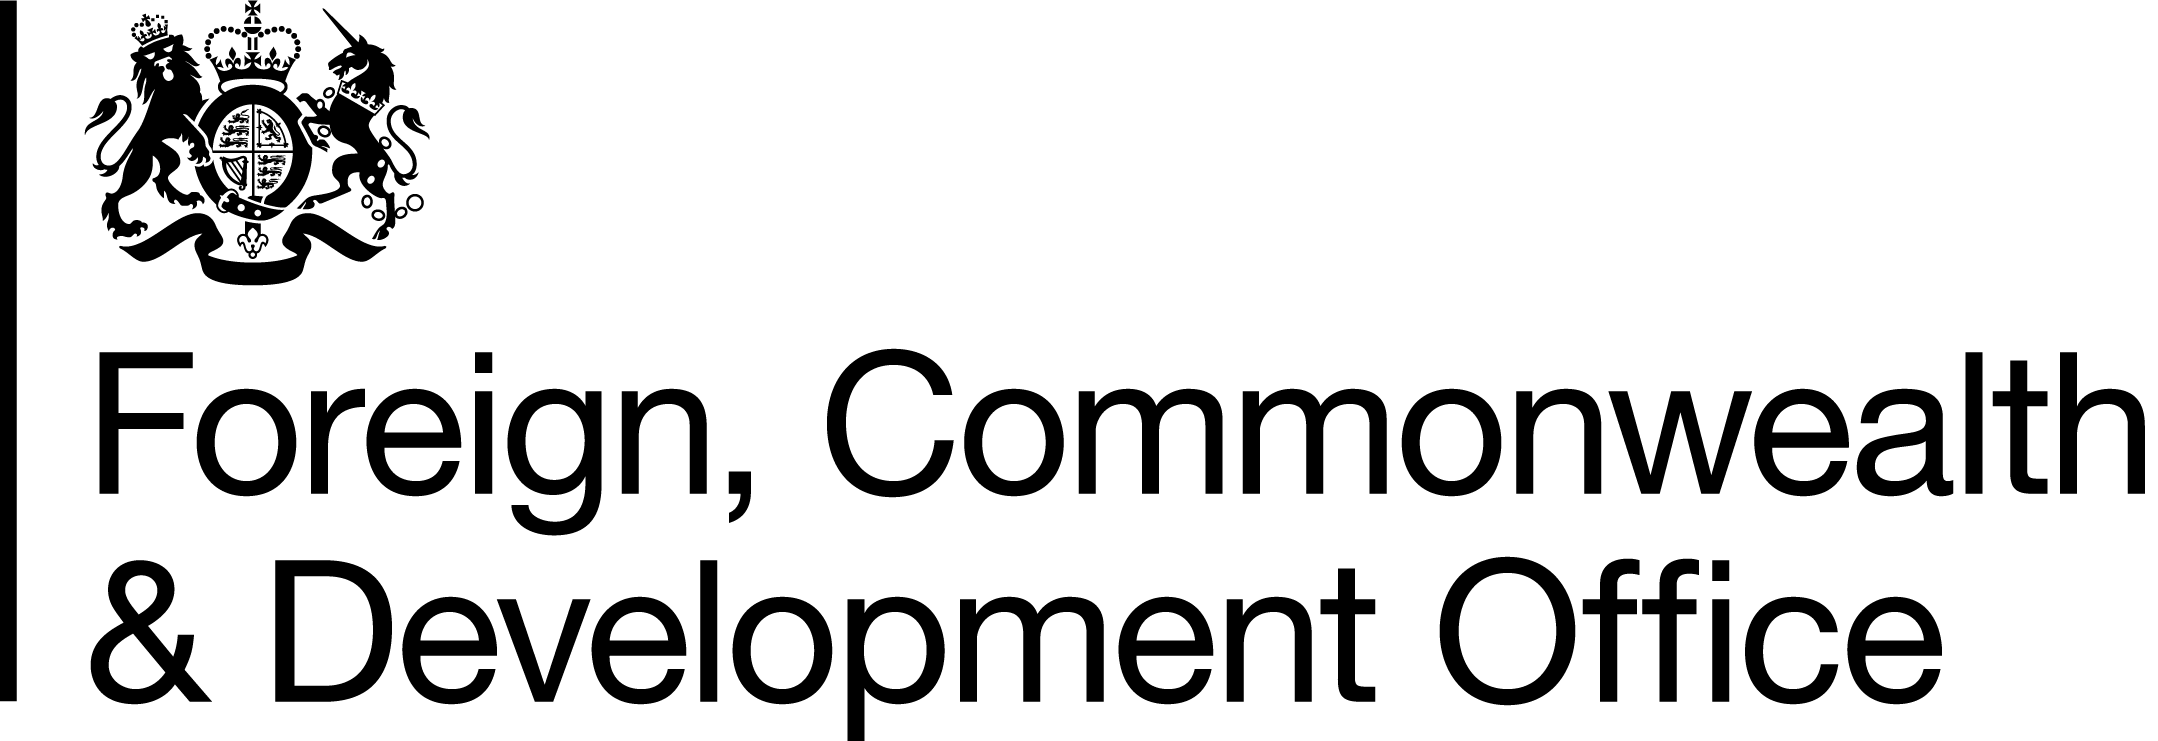 foreign commonwealth and development office logo